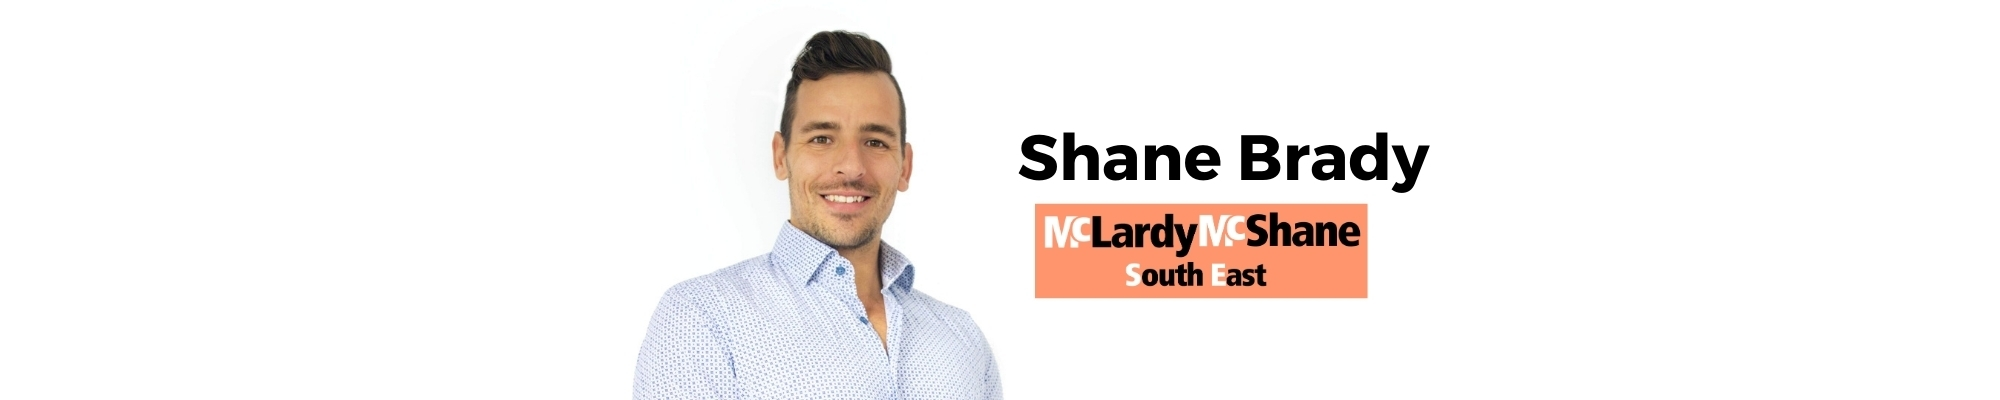 Meet a Broker: Shane Brady | Director, McLardy McShane South East